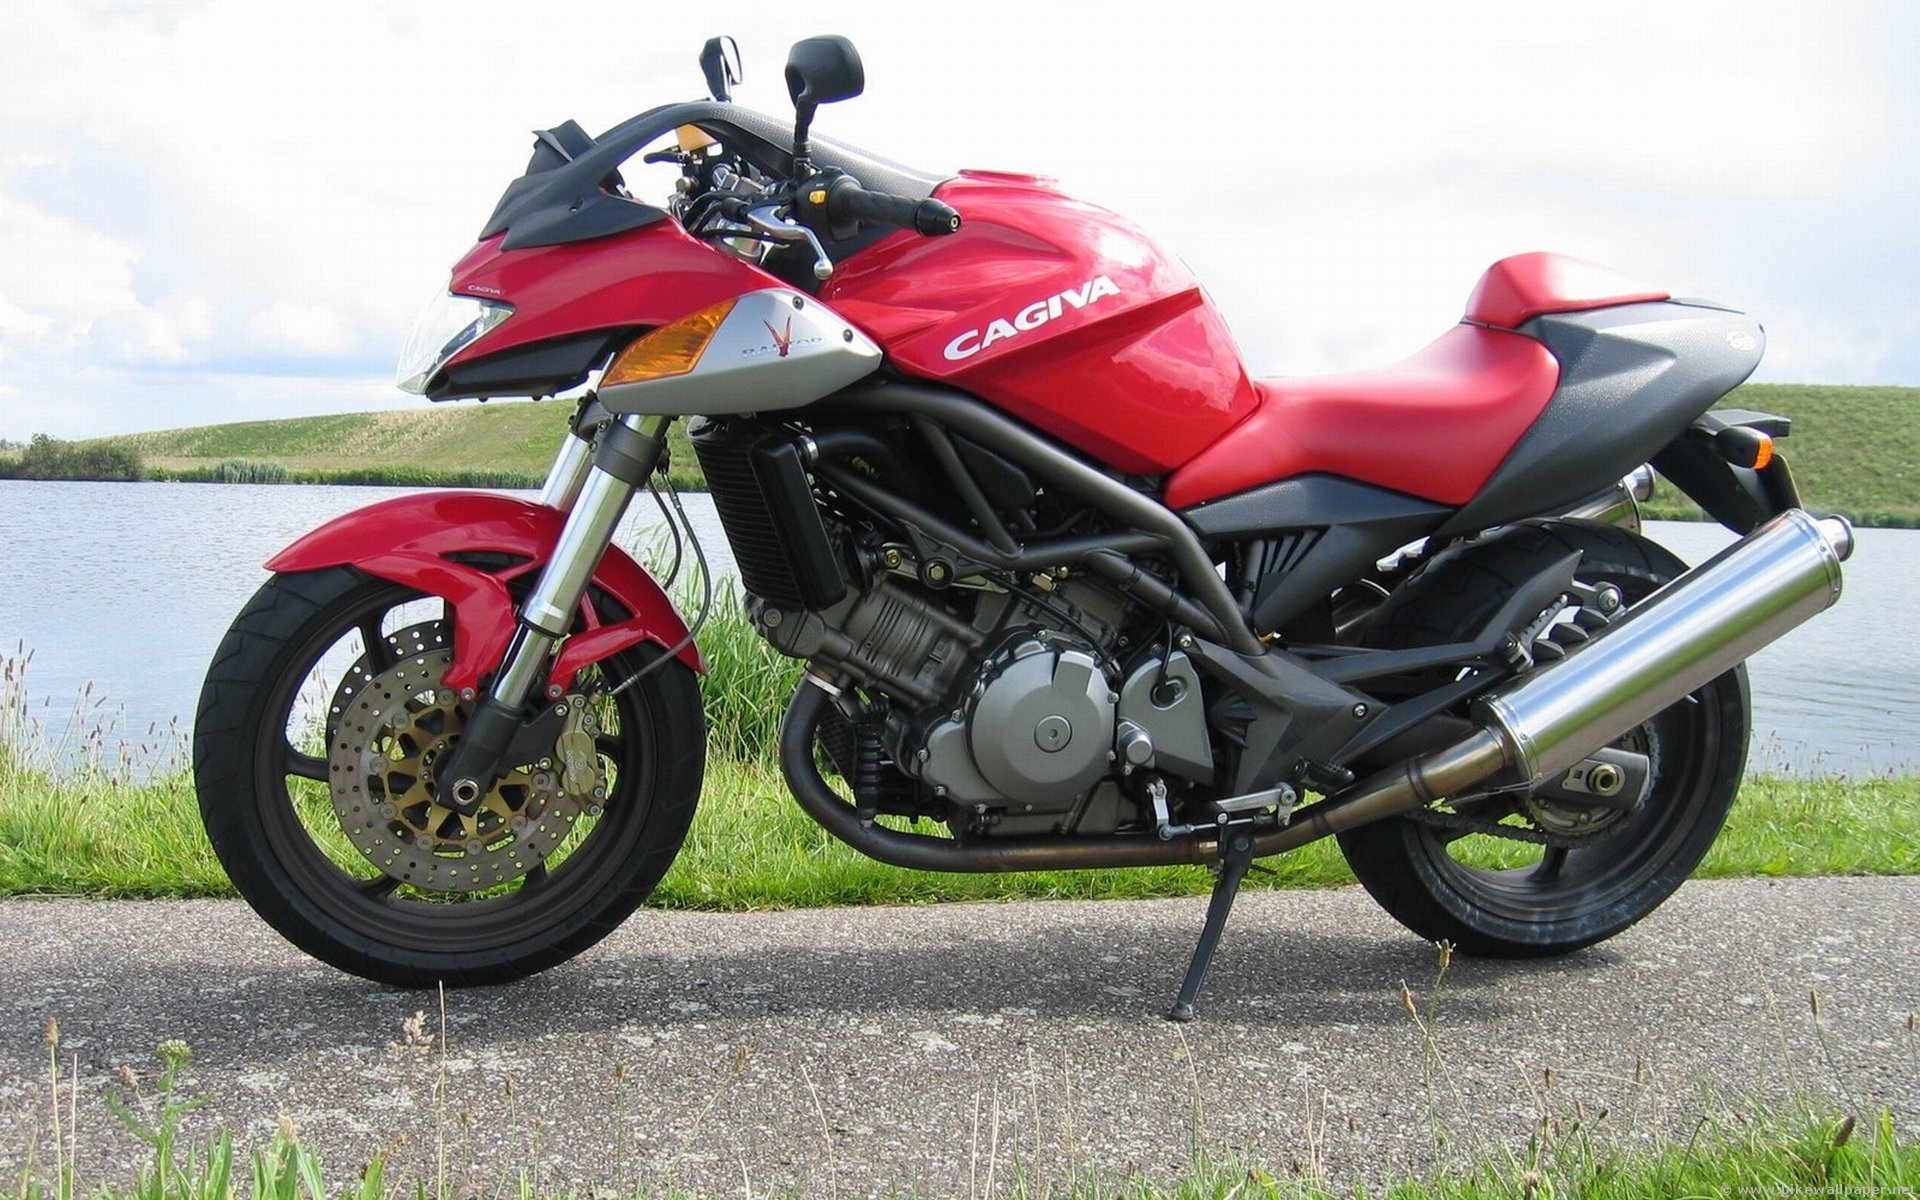 Cagiva Xtra Raptor 1000 images #68018